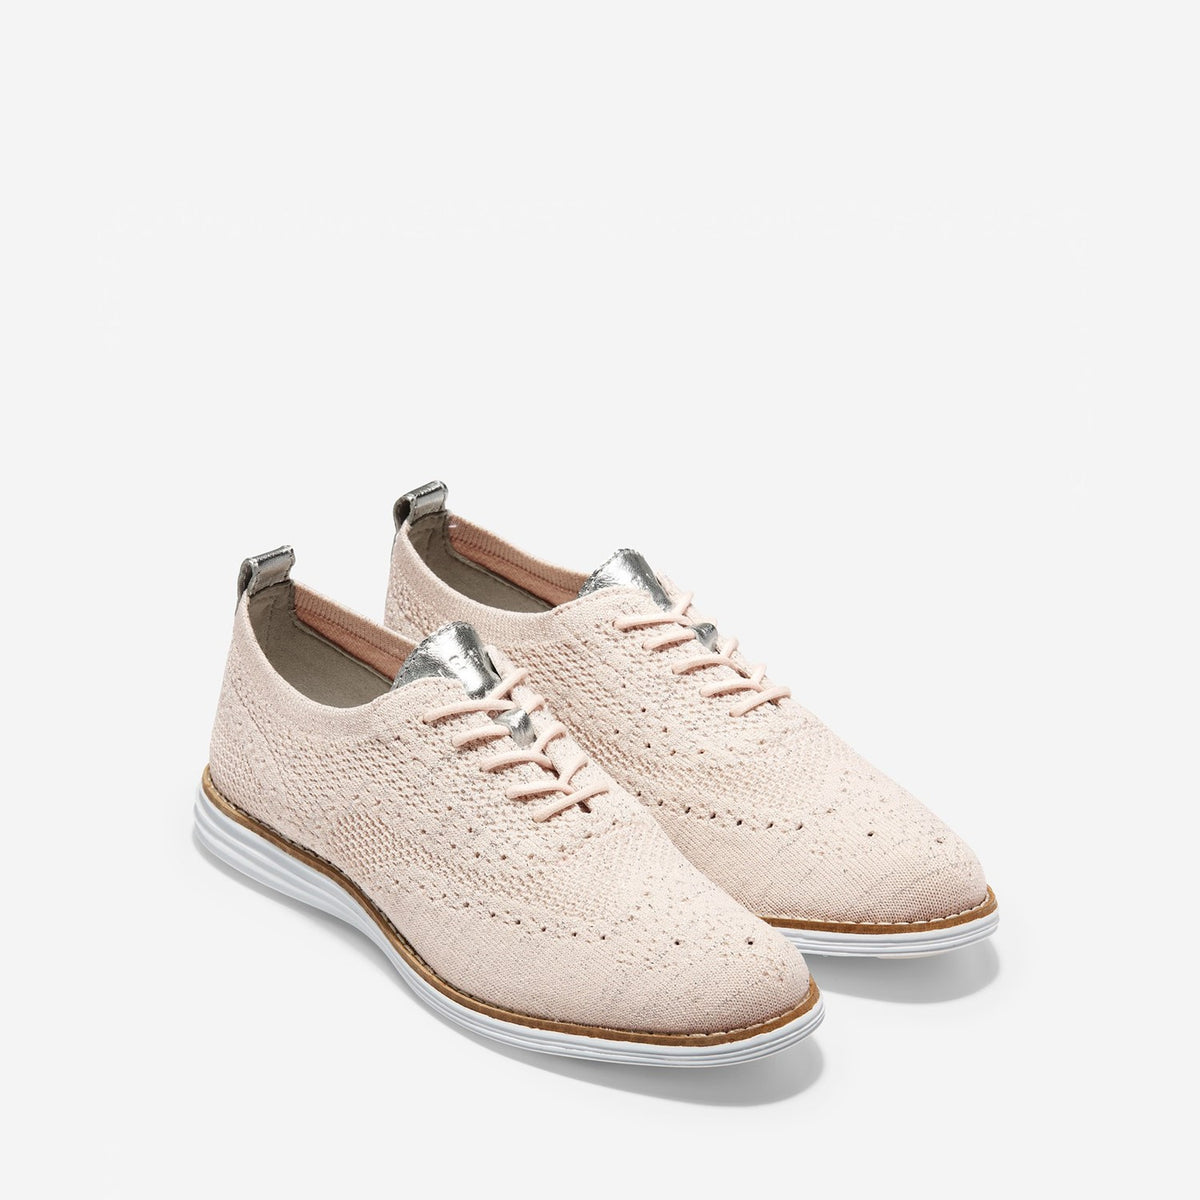 Women's ØriginalGrand Stitchlite Wingtip Oxford Pink